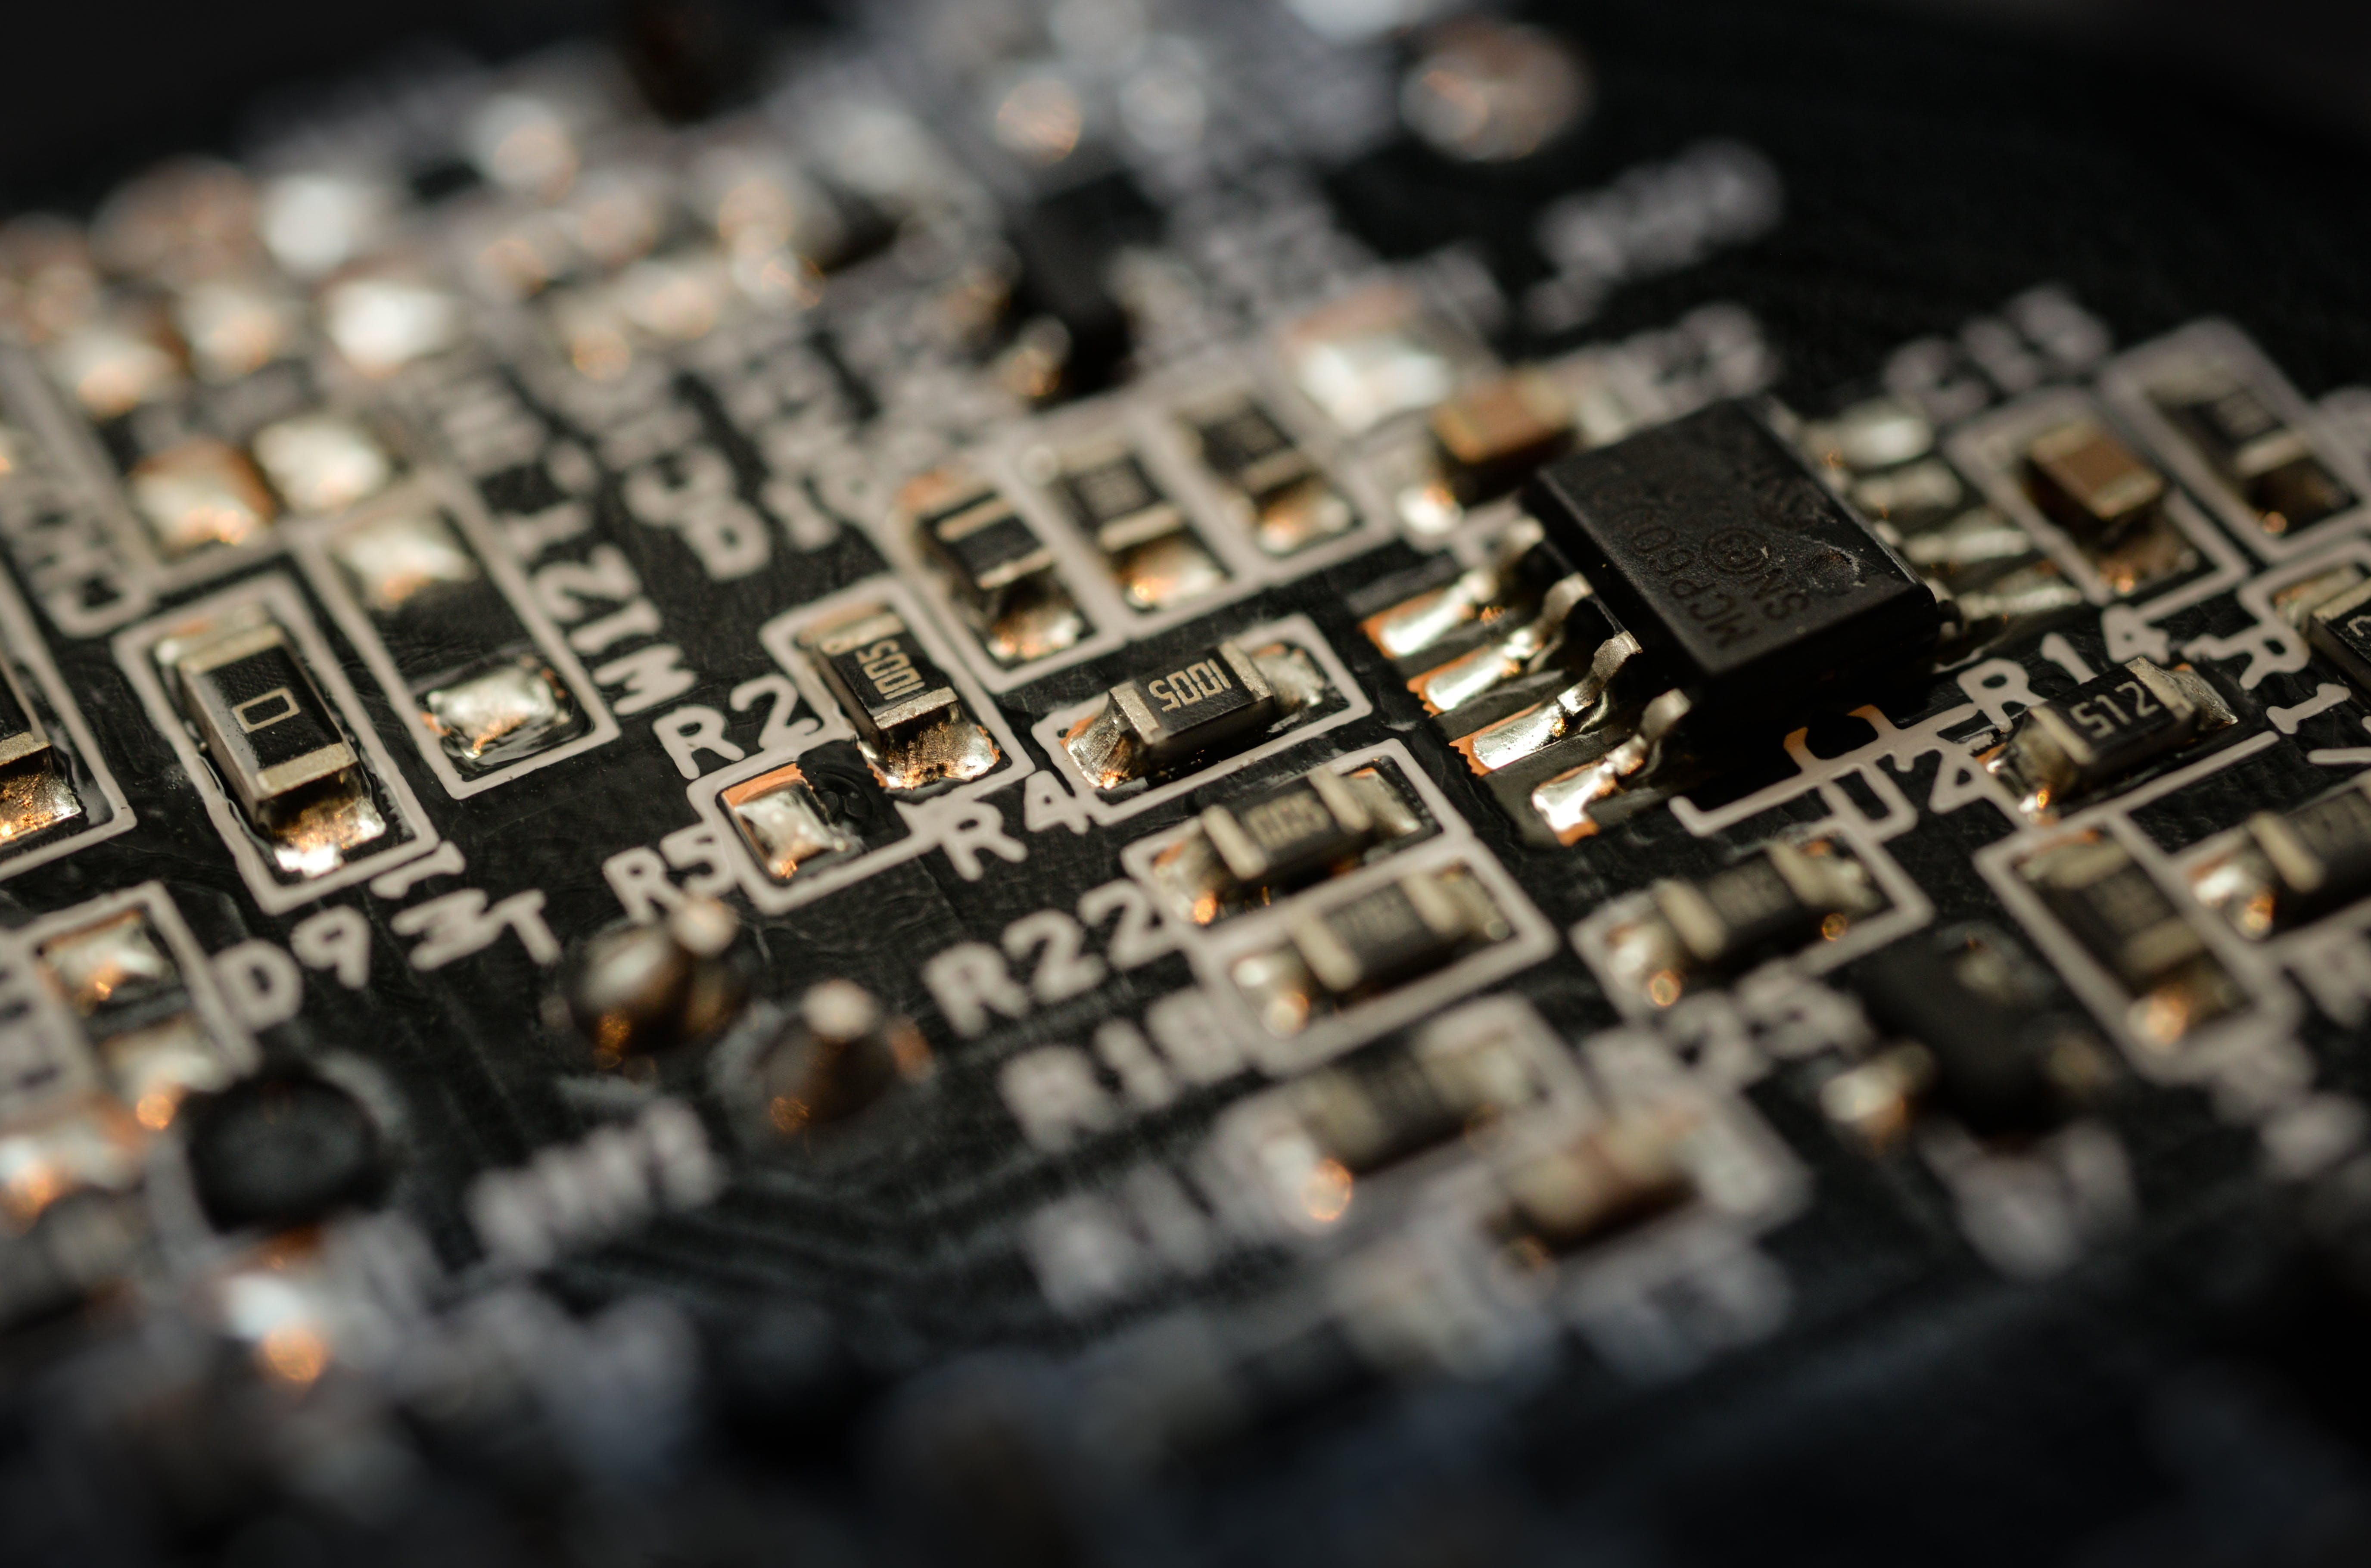 Shallow Focus Photography of Black Circuit Board